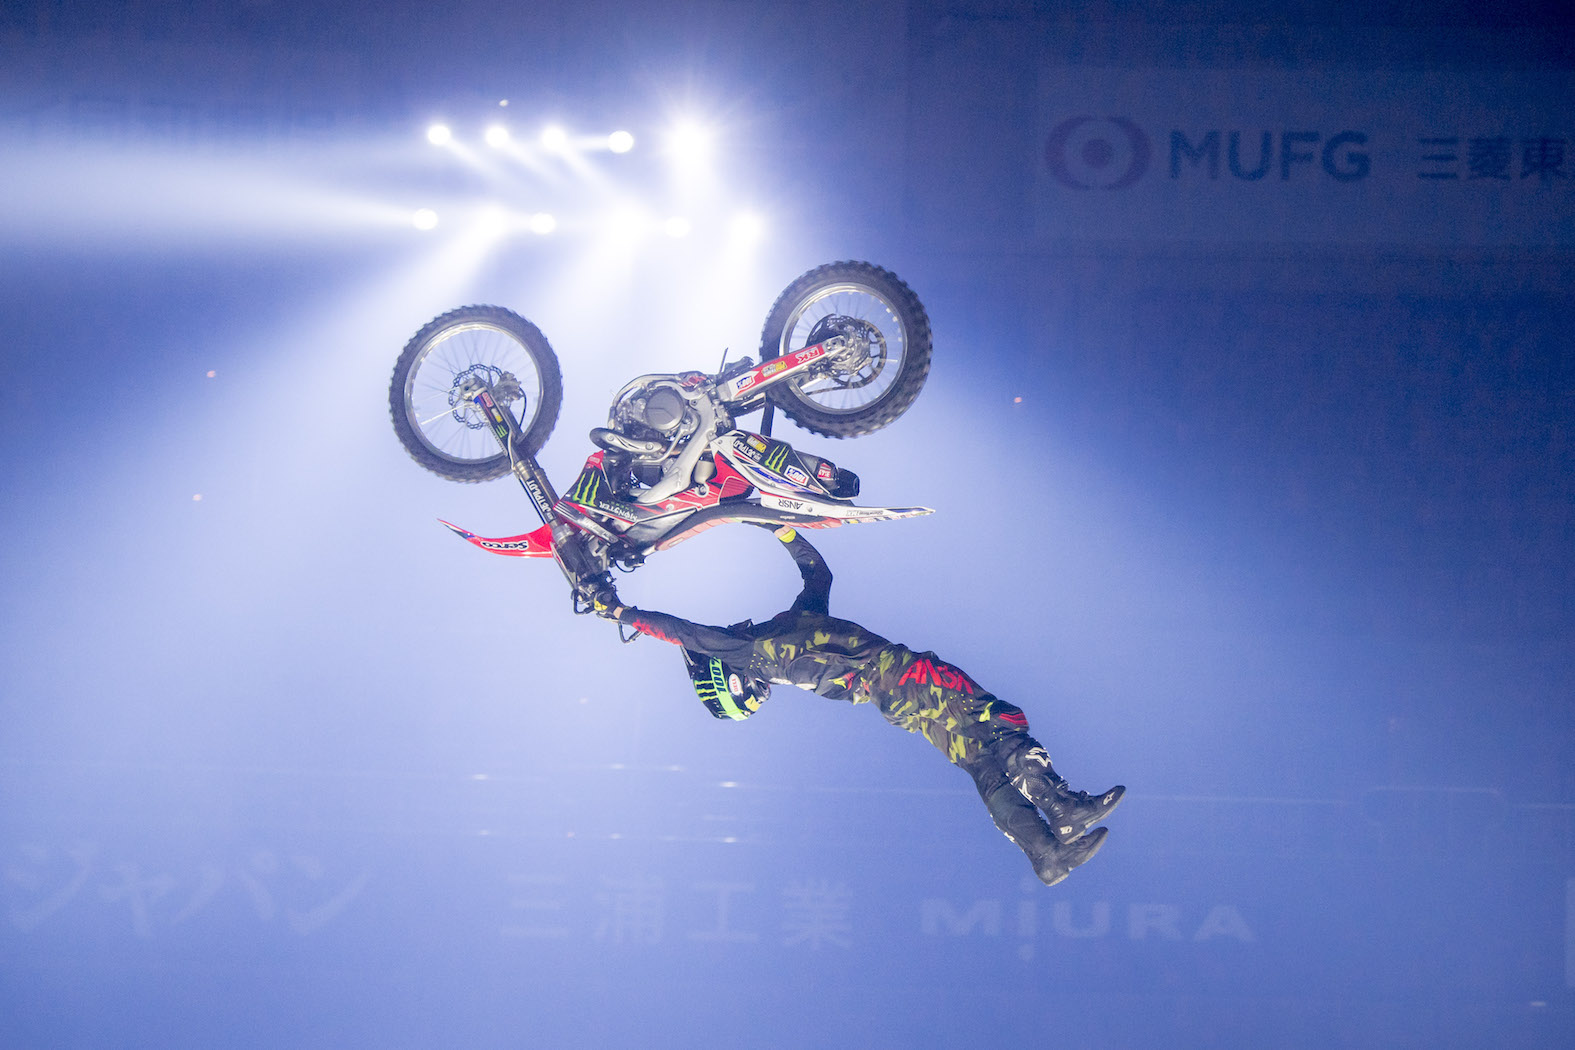 Freestyle Motocross skills with Nitro Circus Live rider Harry Bink